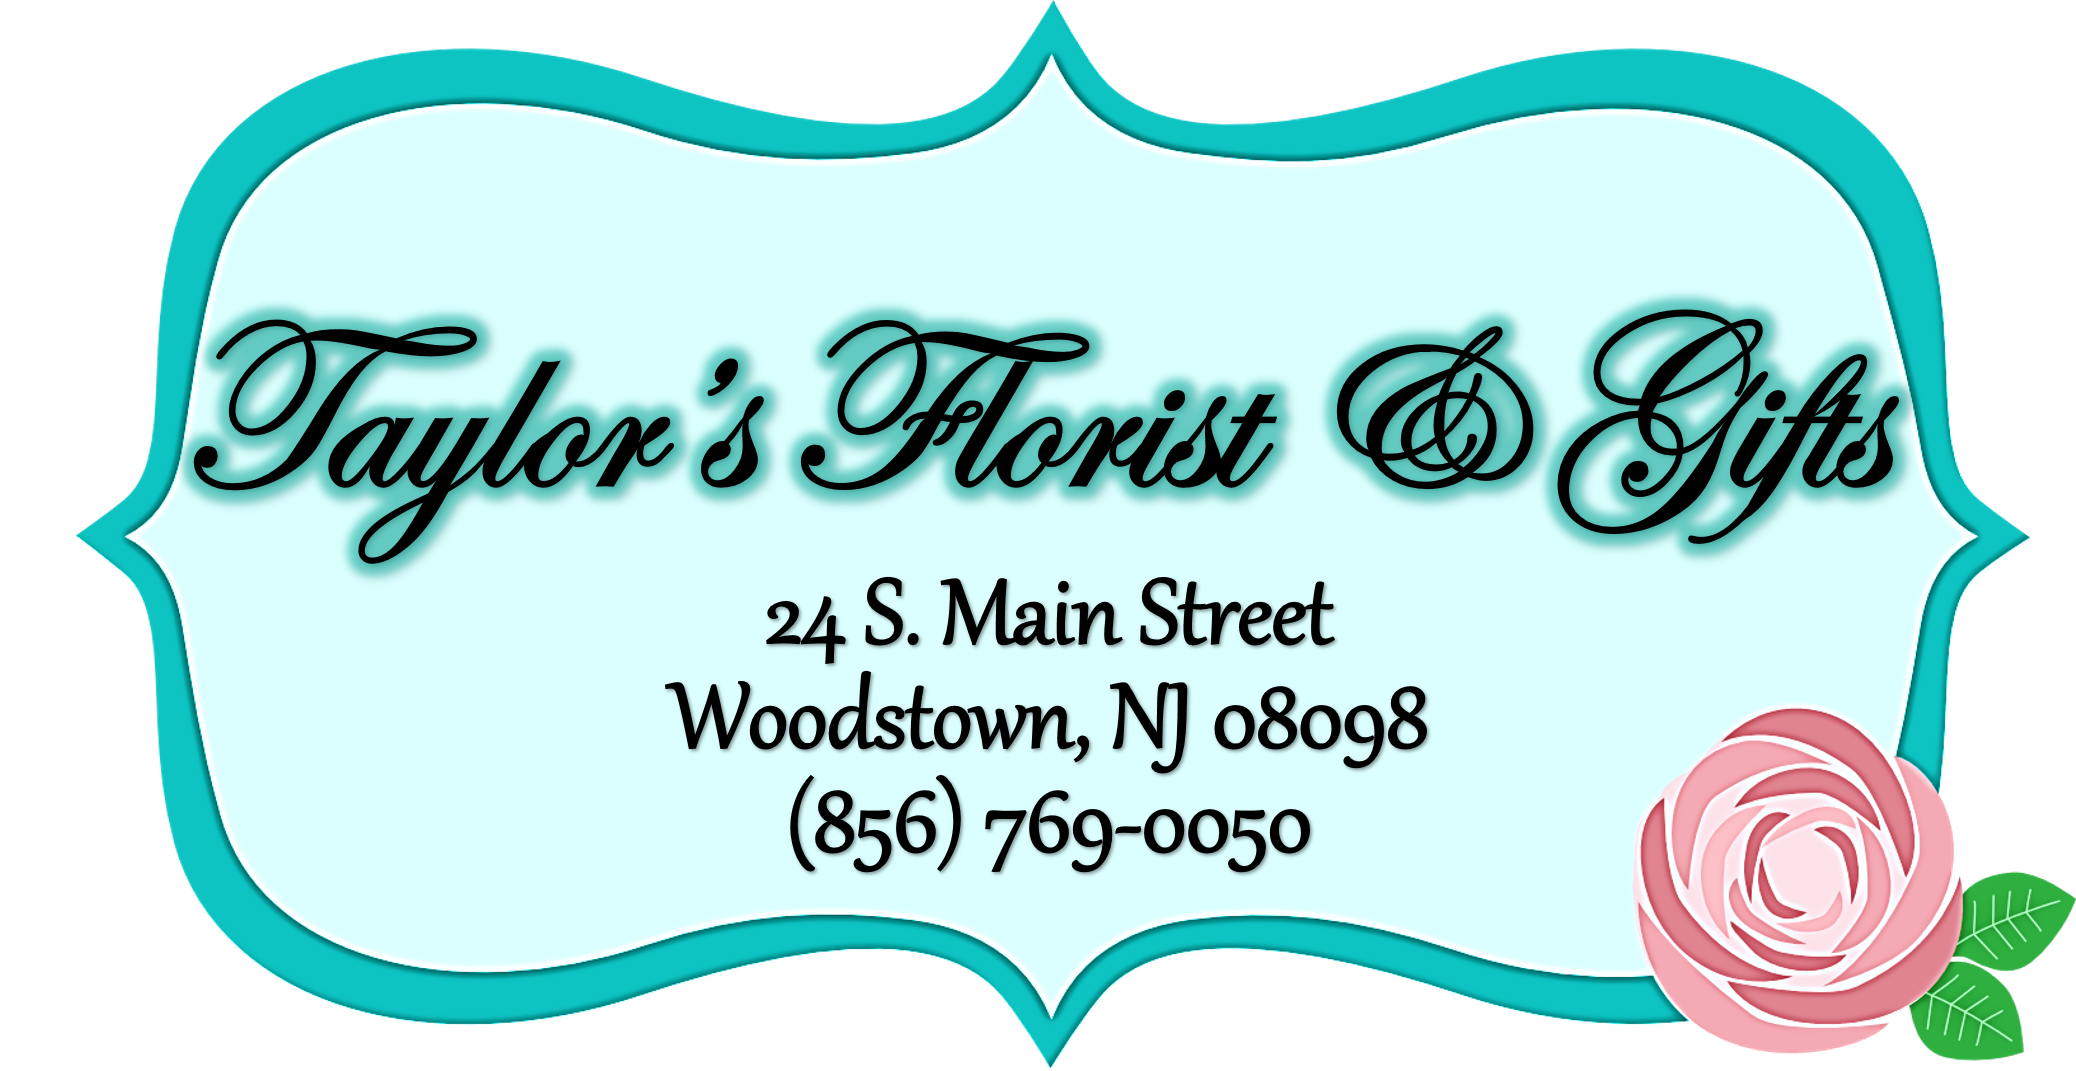 Birthday Flowers Delivery Woodstown Nj Taylors Florist Gifts